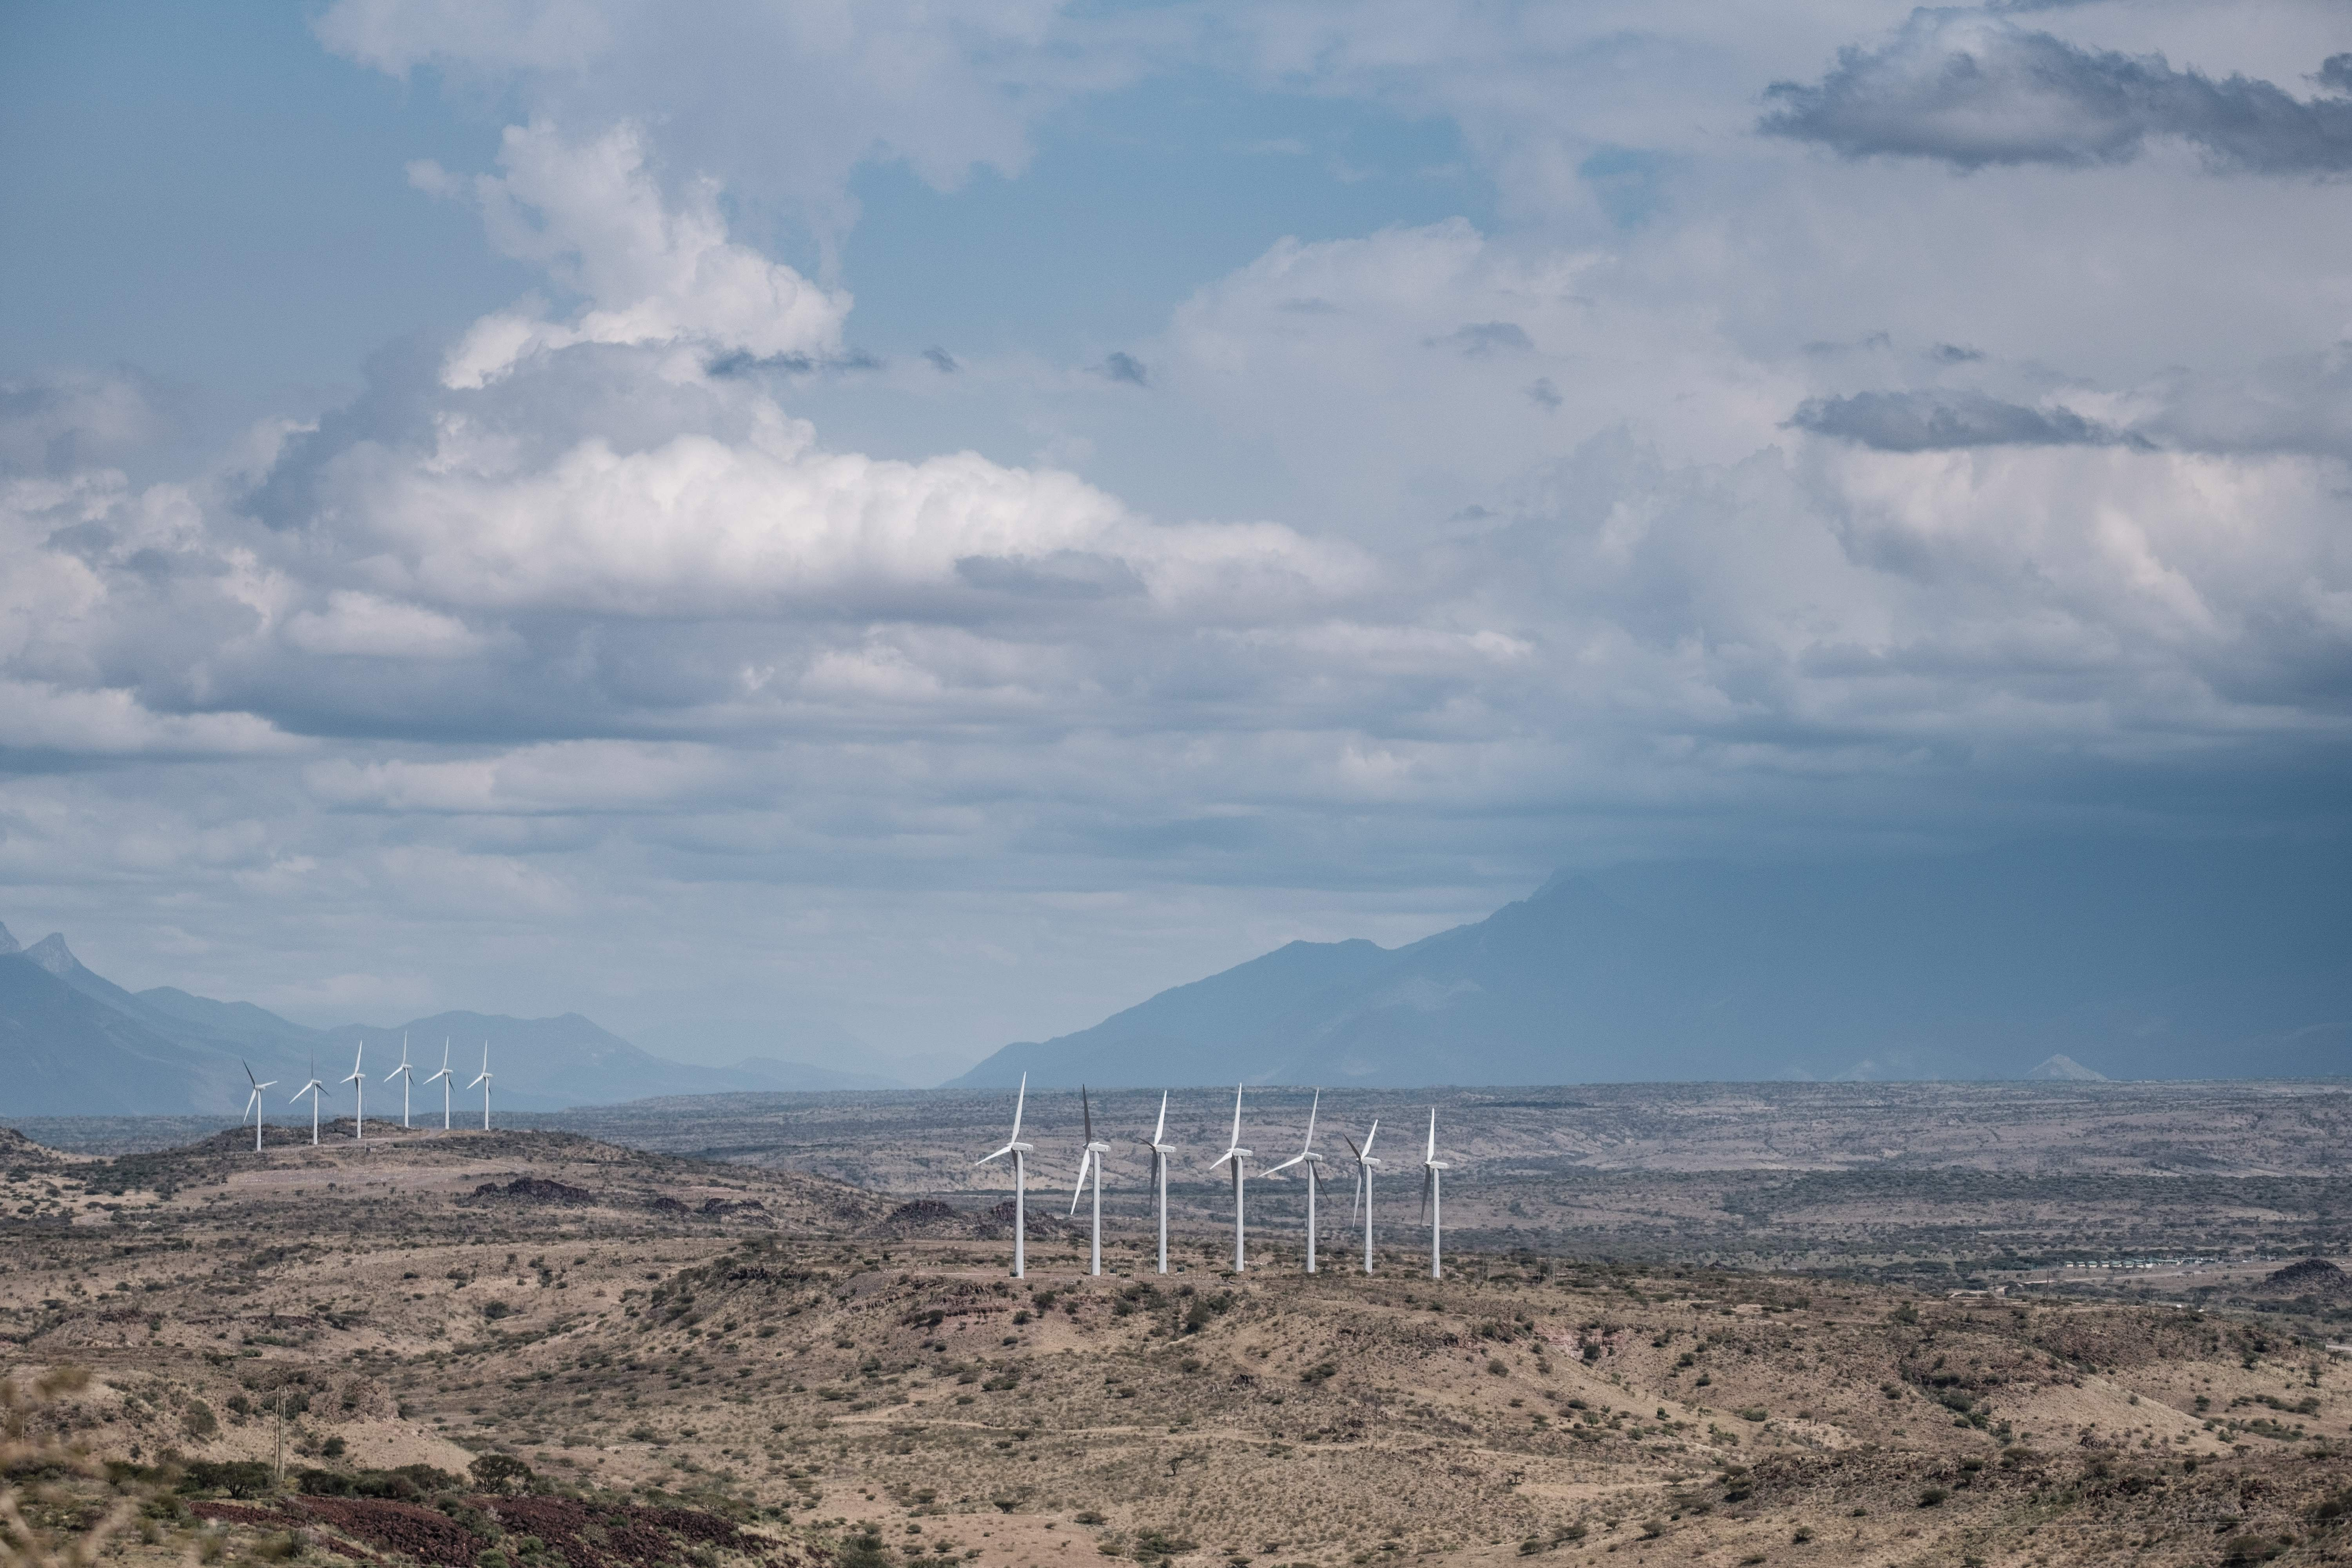 The biggest wind farm in Africa is officially up and running